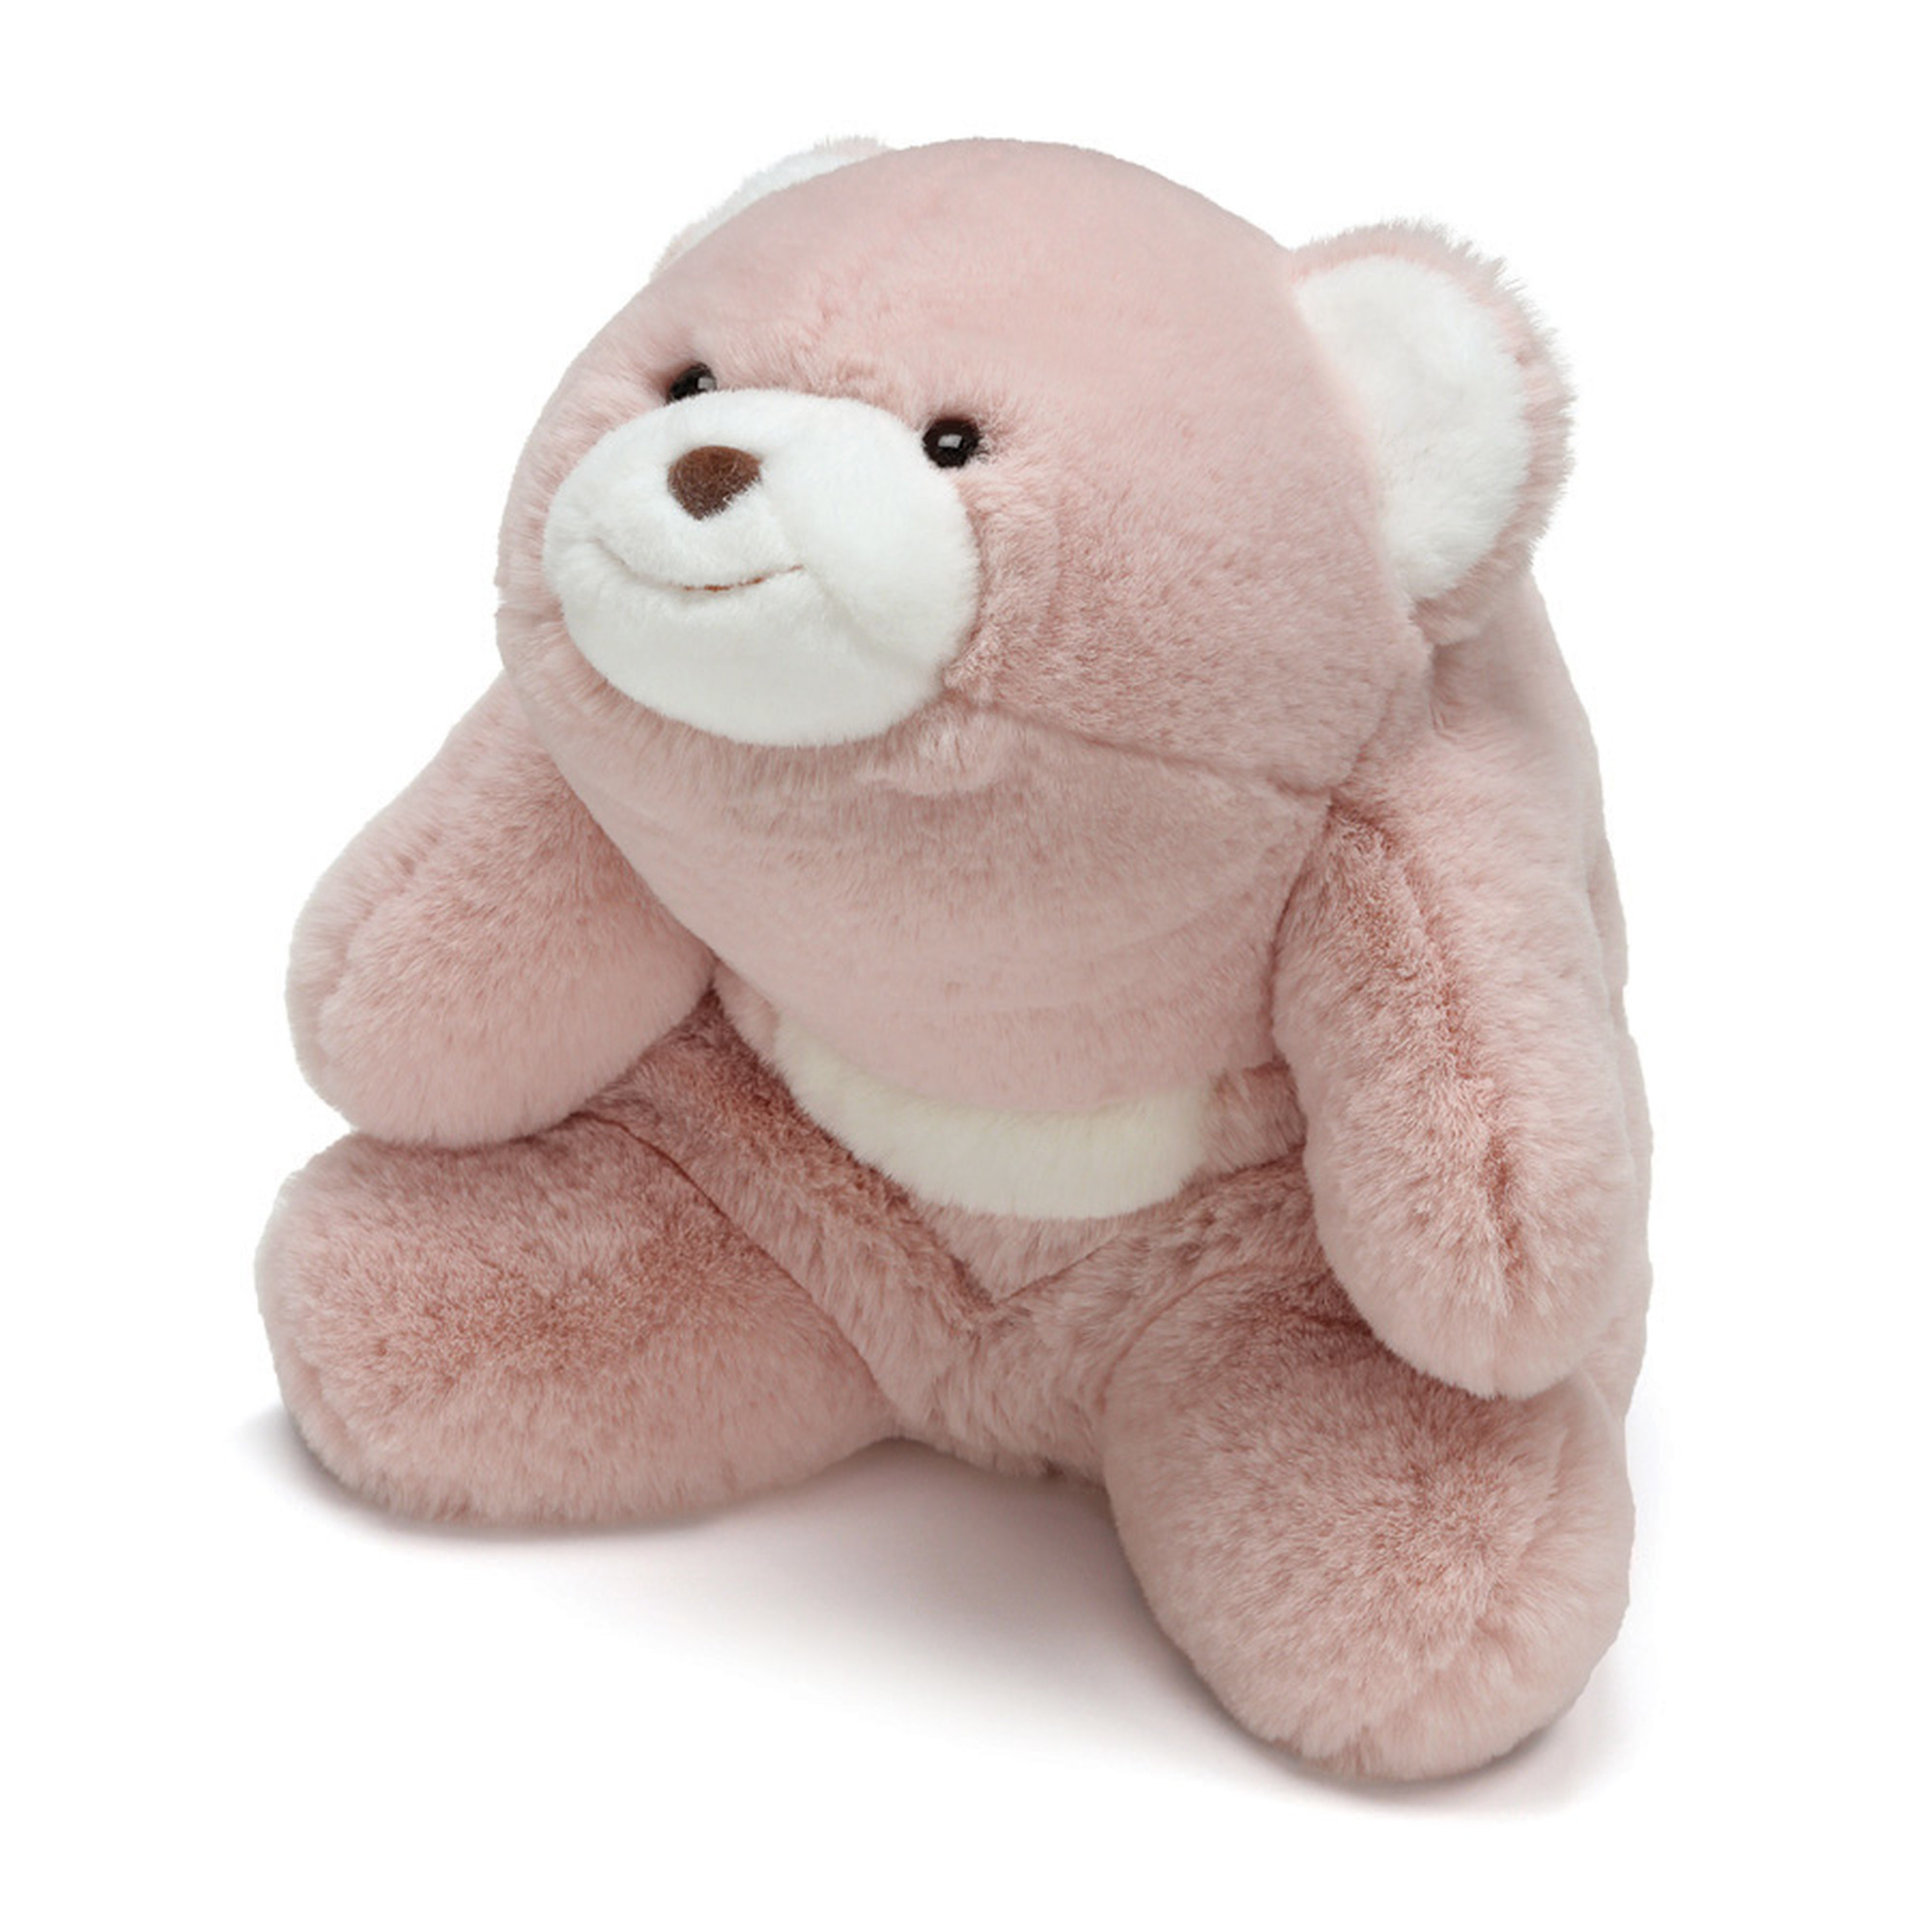 Gund Snuffles Teddy Bear Plush Stuffed Animal in Rose 10� Toy, Pink by GUND